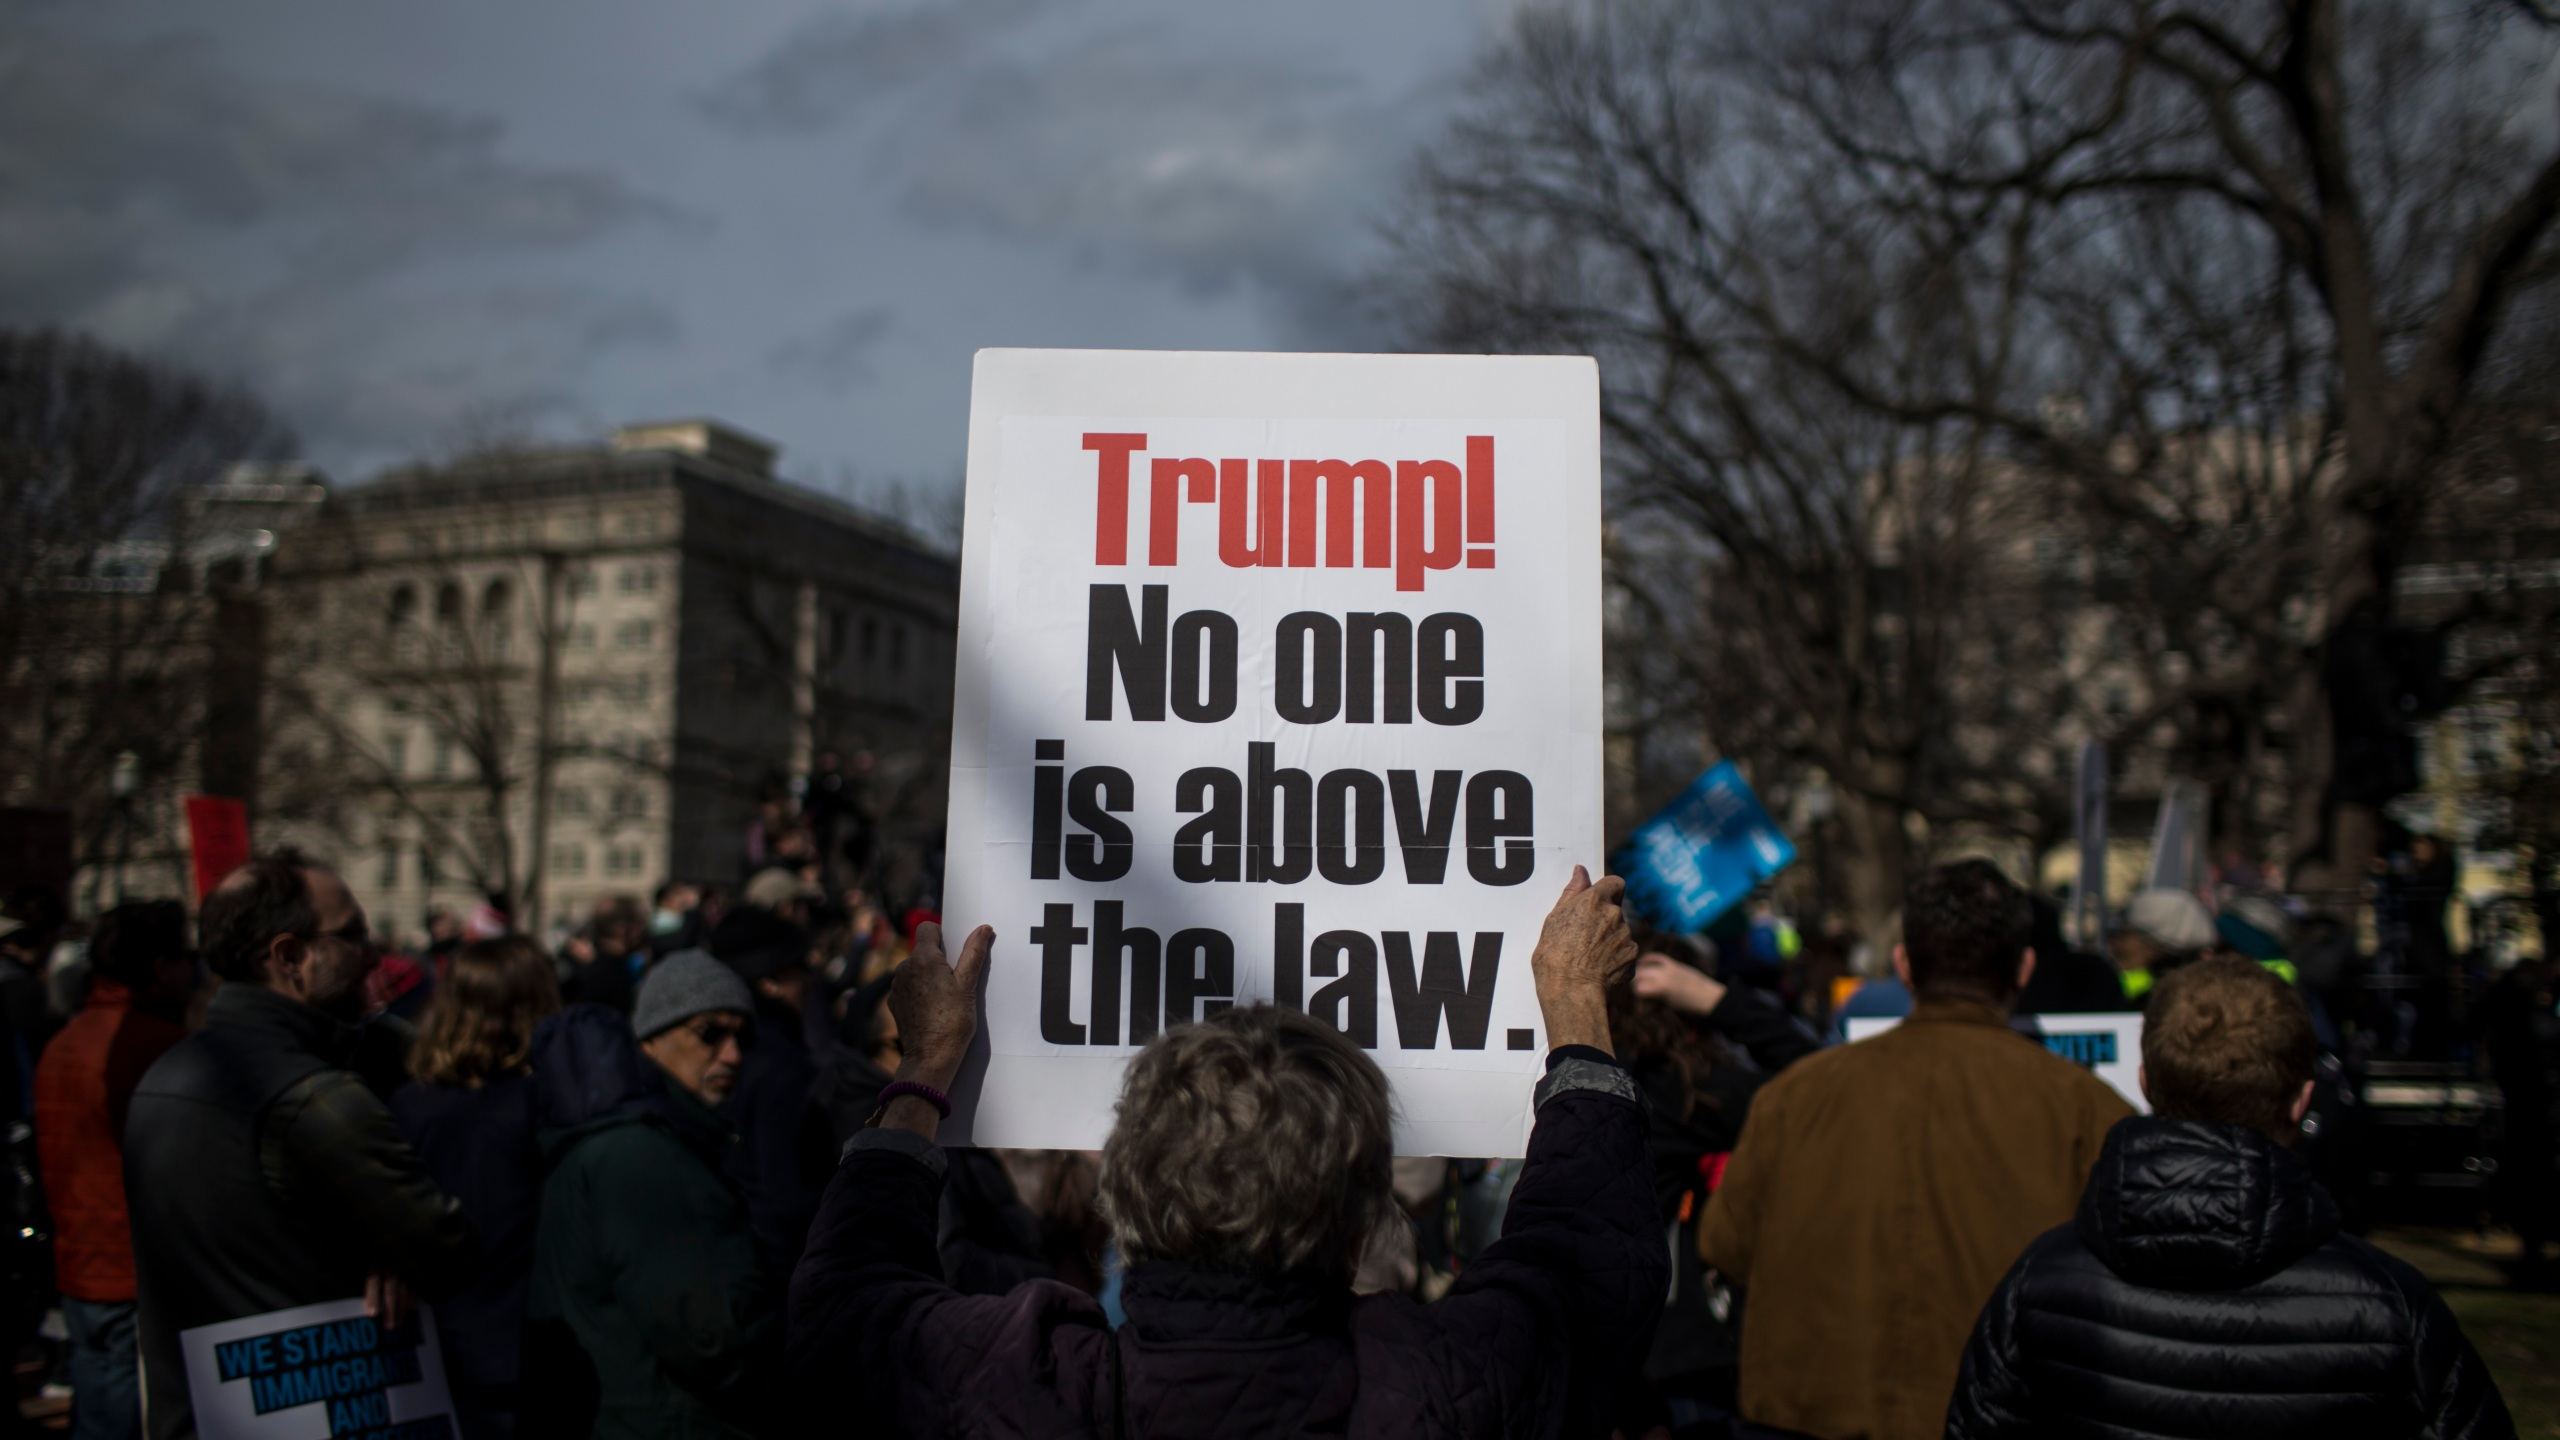 A demonstrator holds a sign in Lafayette Square during a demonstration organized by the American Civil Liberties Union (ACLU) protesting President Donald Trump's declaration of emergency powers on Feb. 18, 2019, in Washington, D.C. (Zach Gibson/Getty Images)